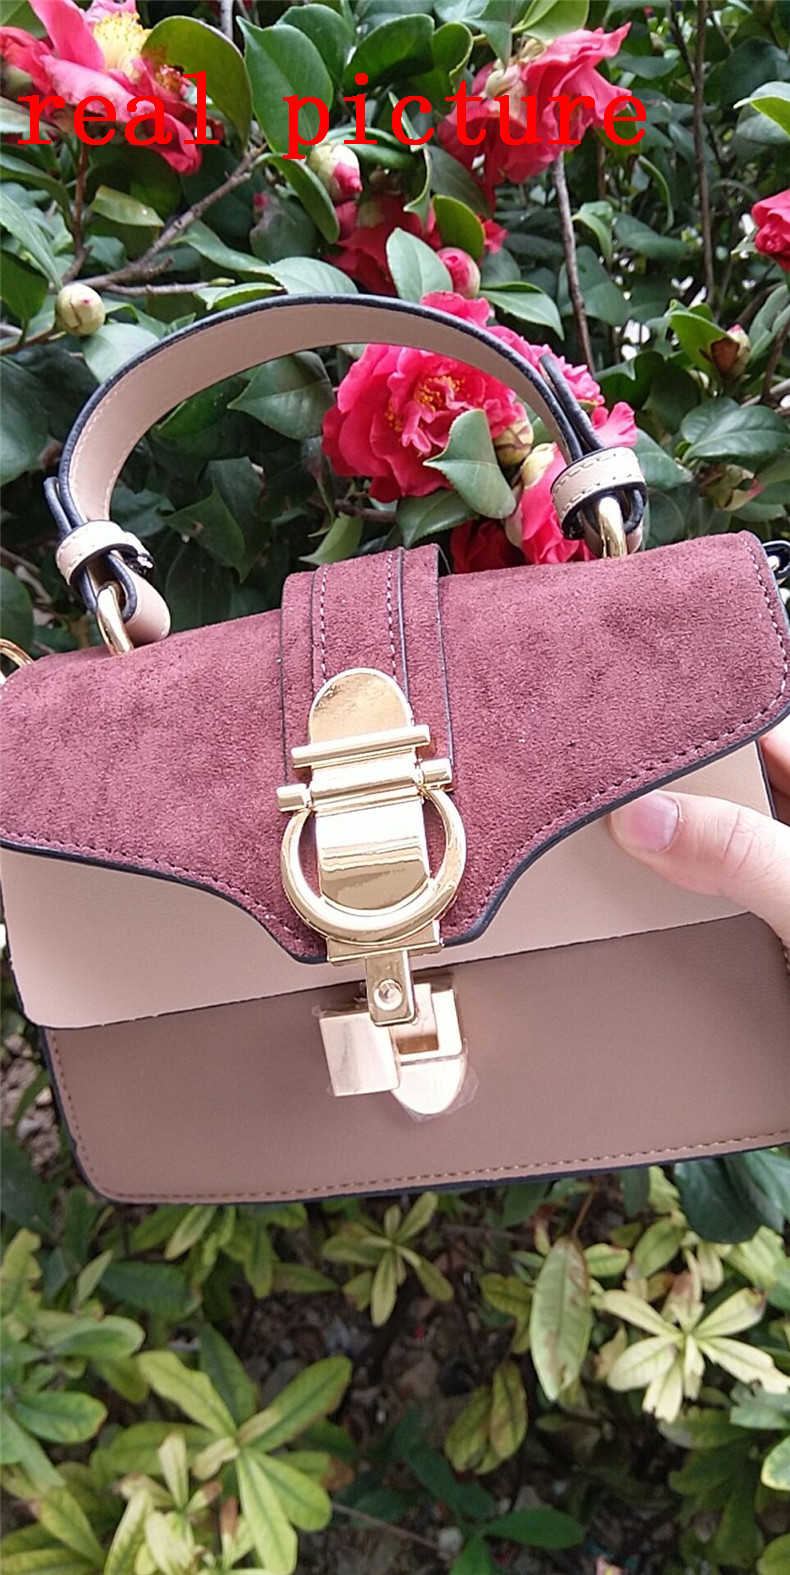 HTB1PcT dYus3KVjSZKbq6xqkFXa6 - New High Quality Women Handbags Bag  Bags Famous  Women Bags Ladies Sac A Main Shoulder Messenger Bags Flap